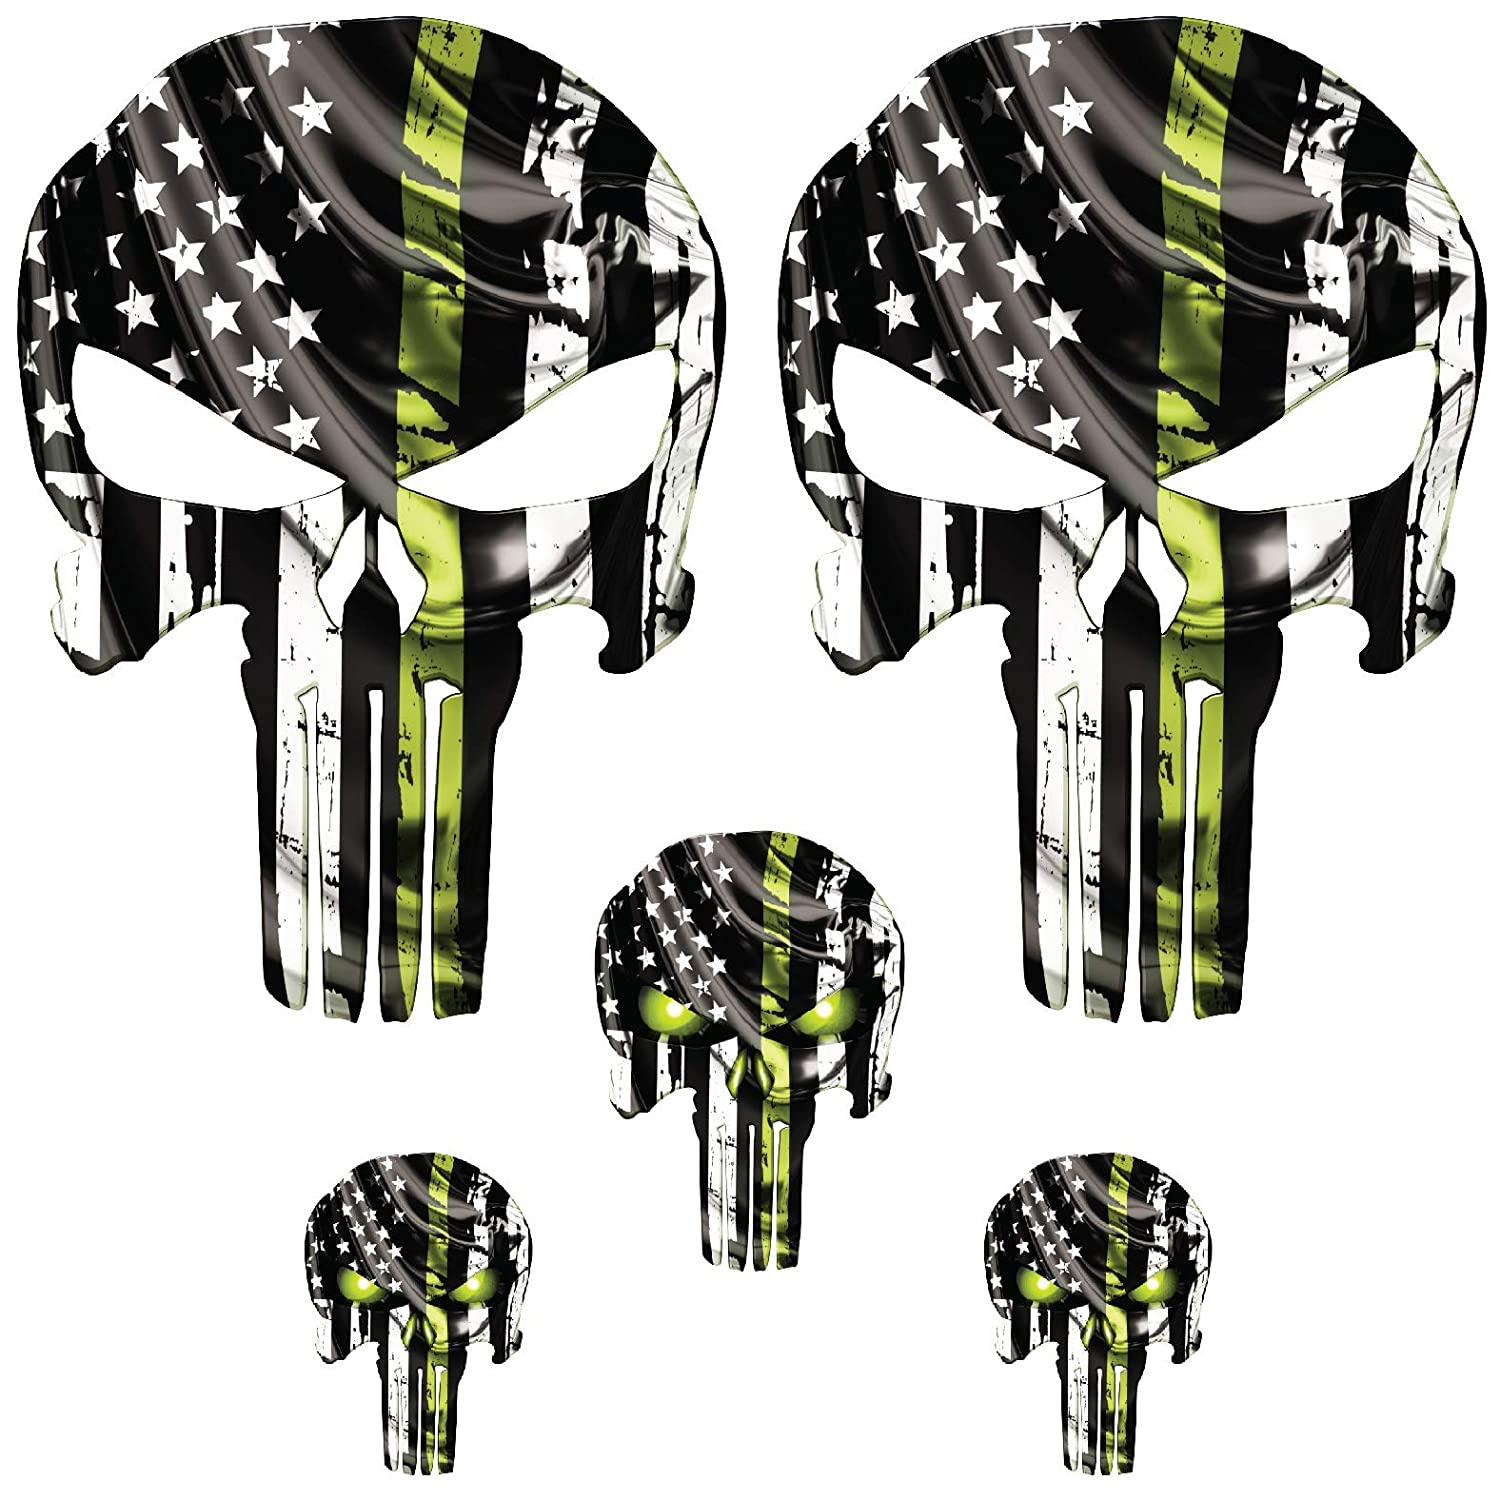 Punisher Skull Decal with Thin Blue line Cars Premium Matterials UV Protected for Helmets Bottles Laminated Medium, Black White USA Grunge Windows containter 6mil